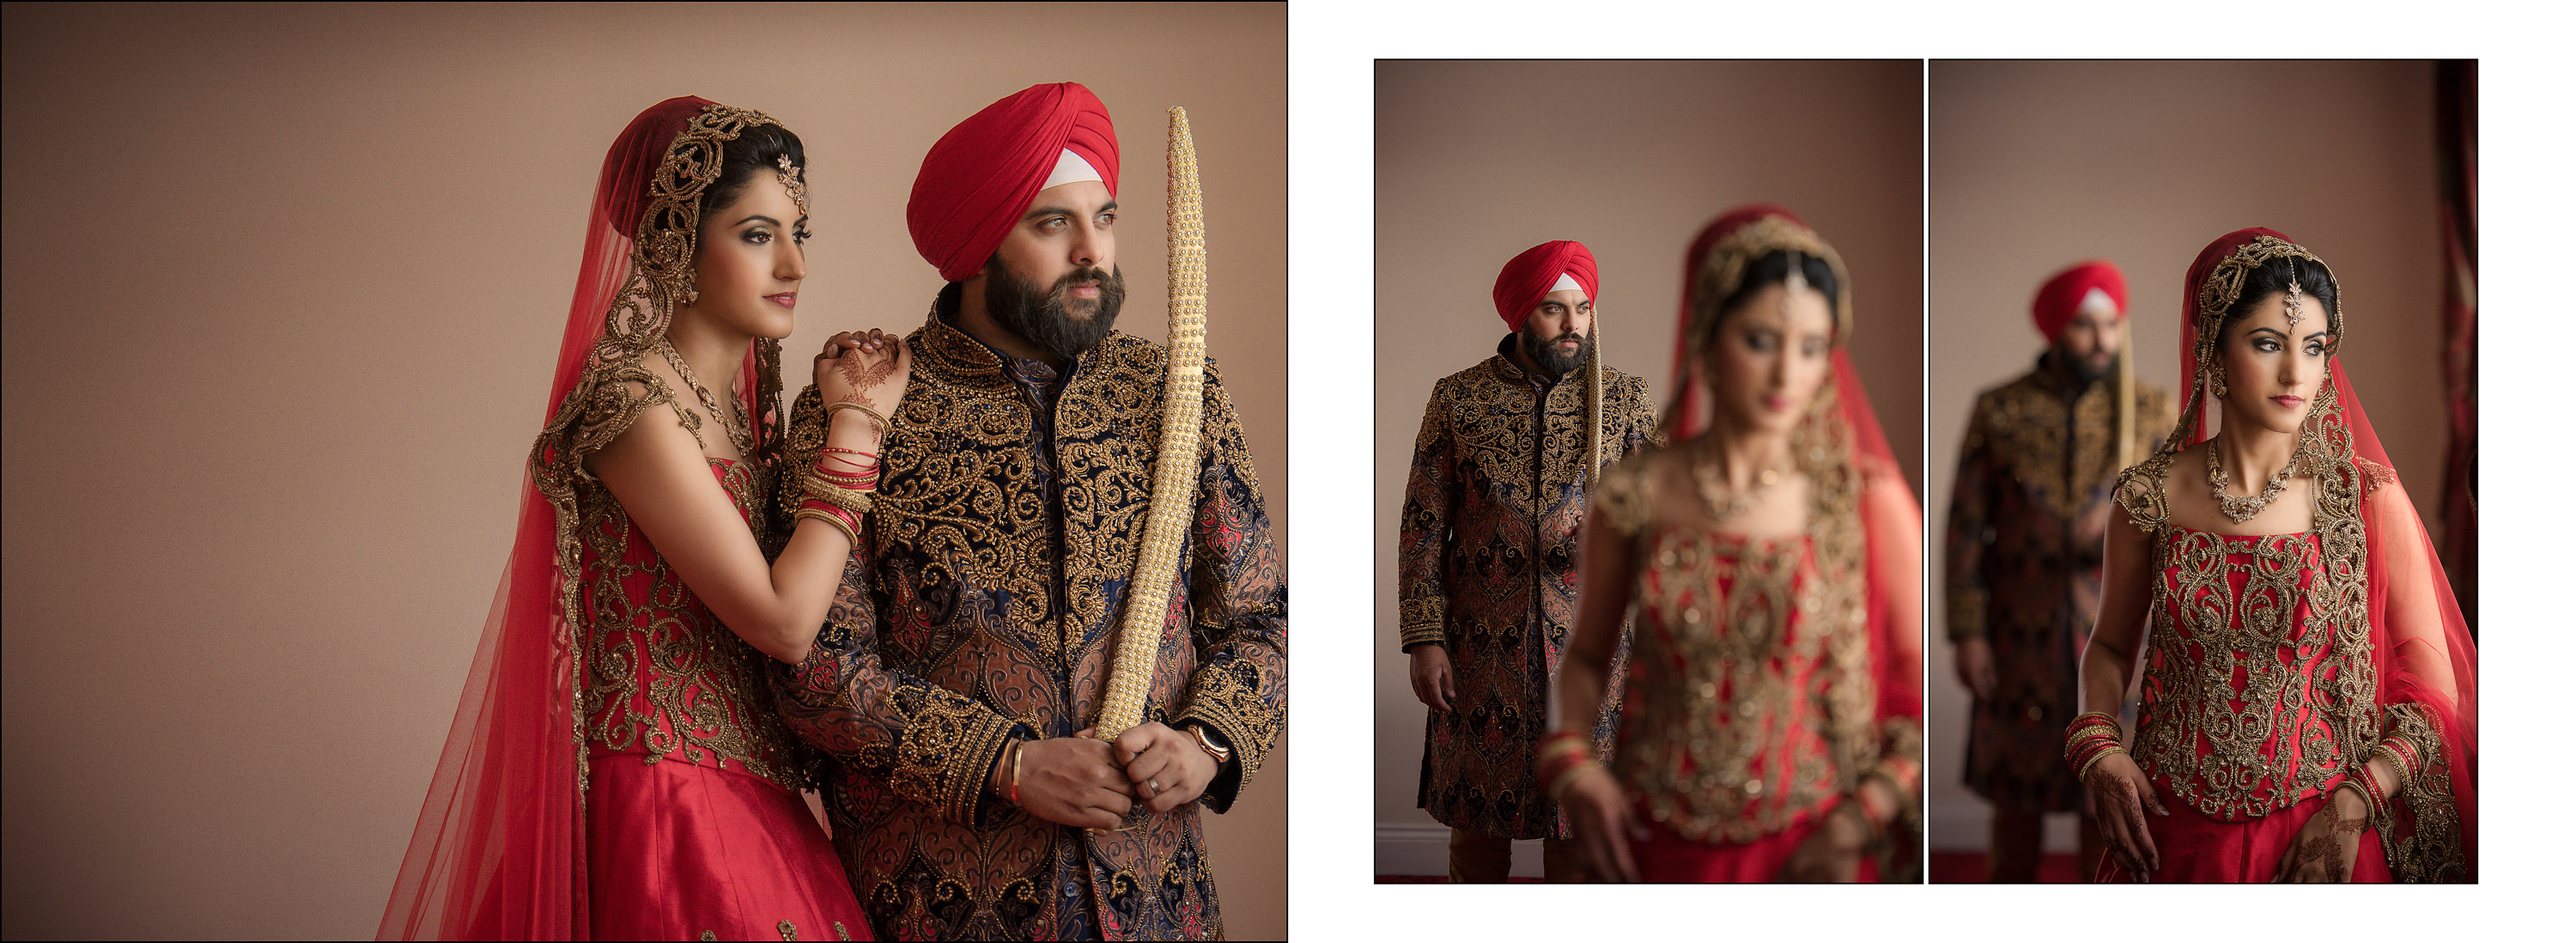 best-asian-wedding-ragley-hall-didar-virdi-18